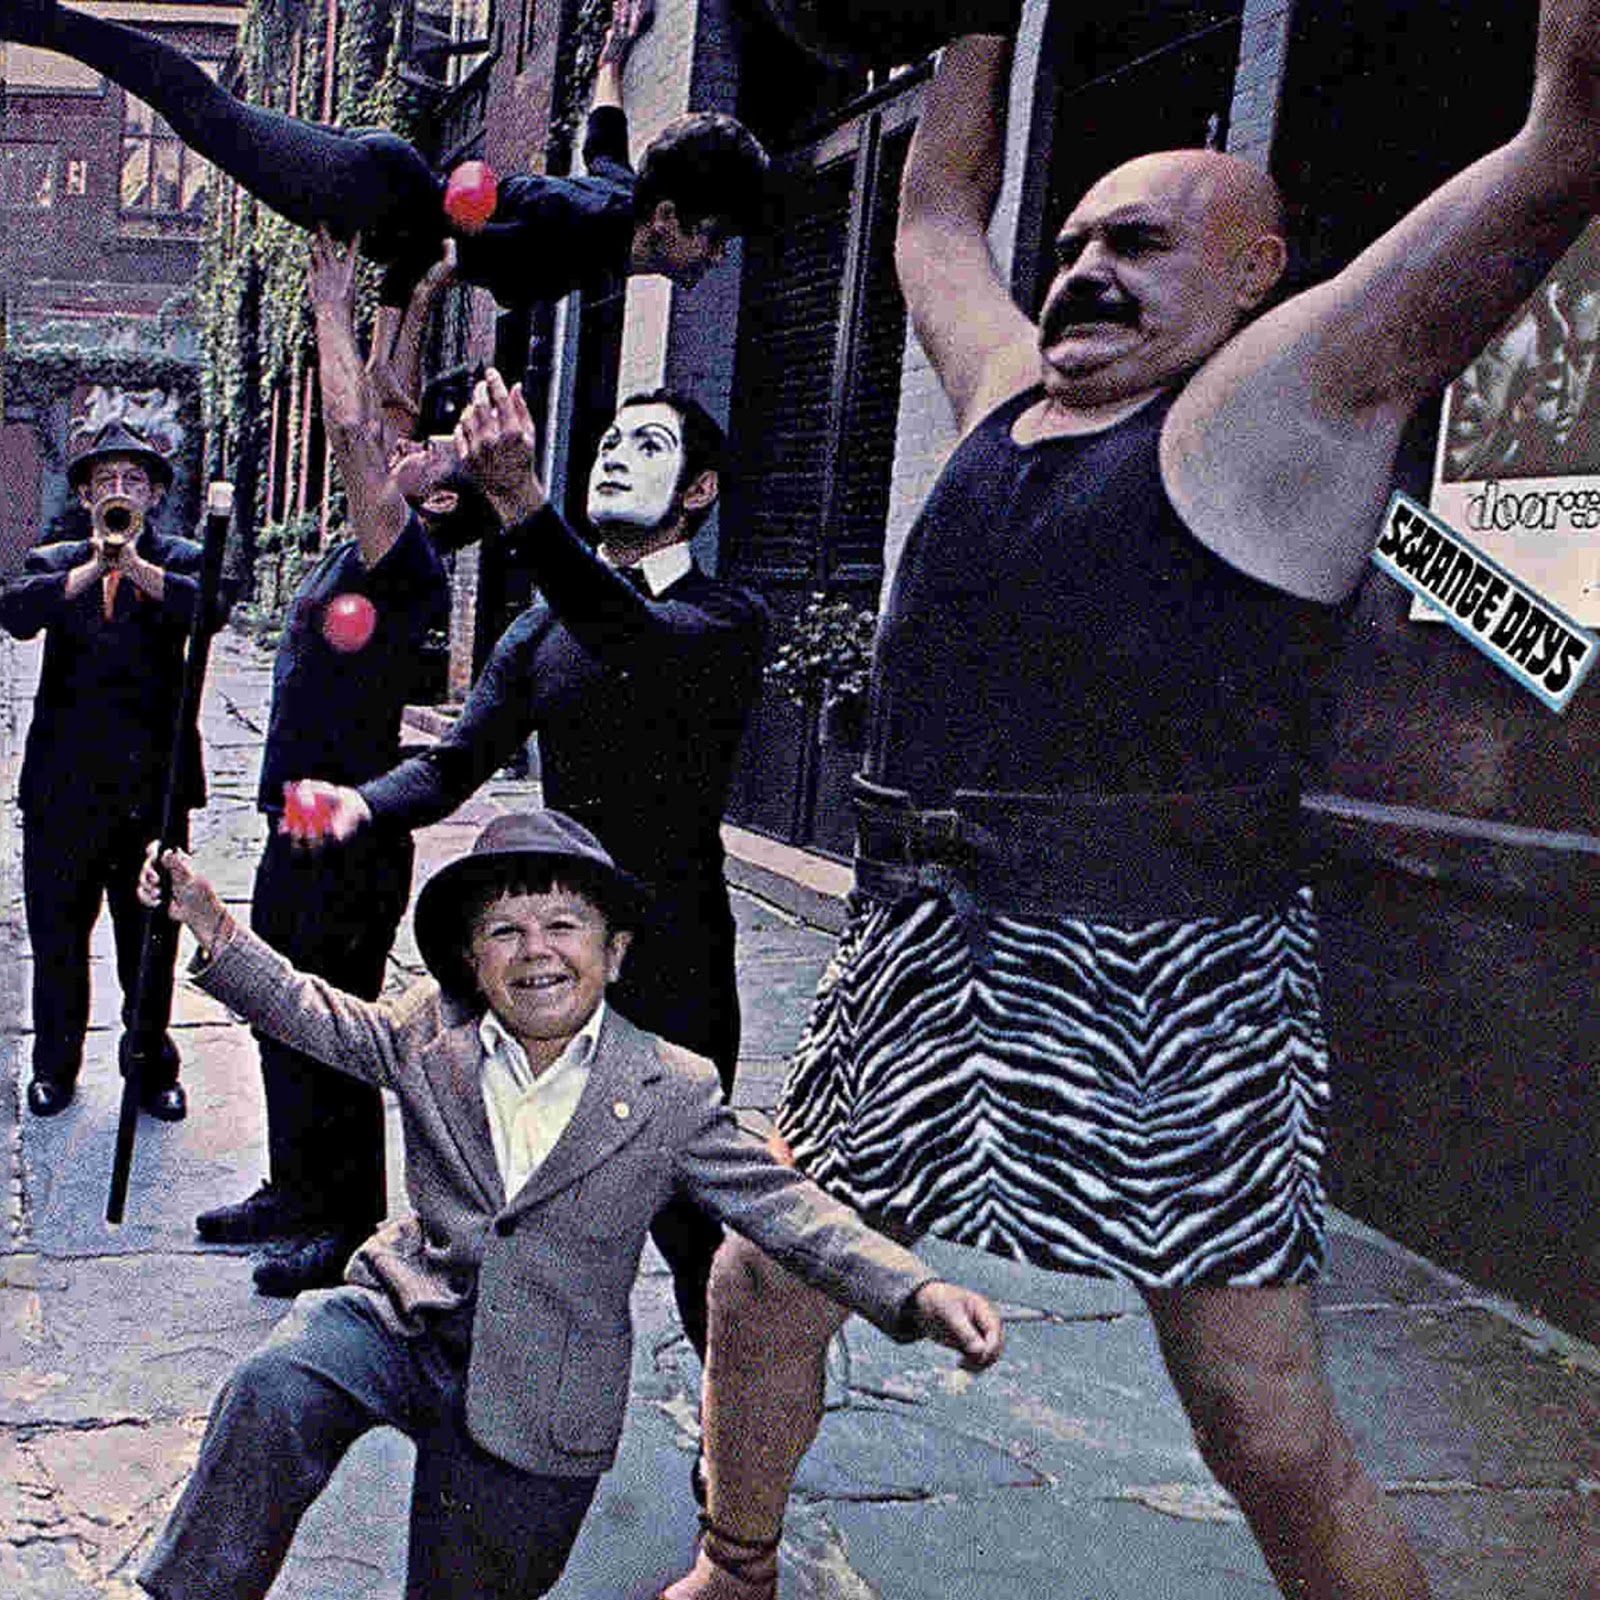 Doublecast 91 - Strange Days (The Doors)